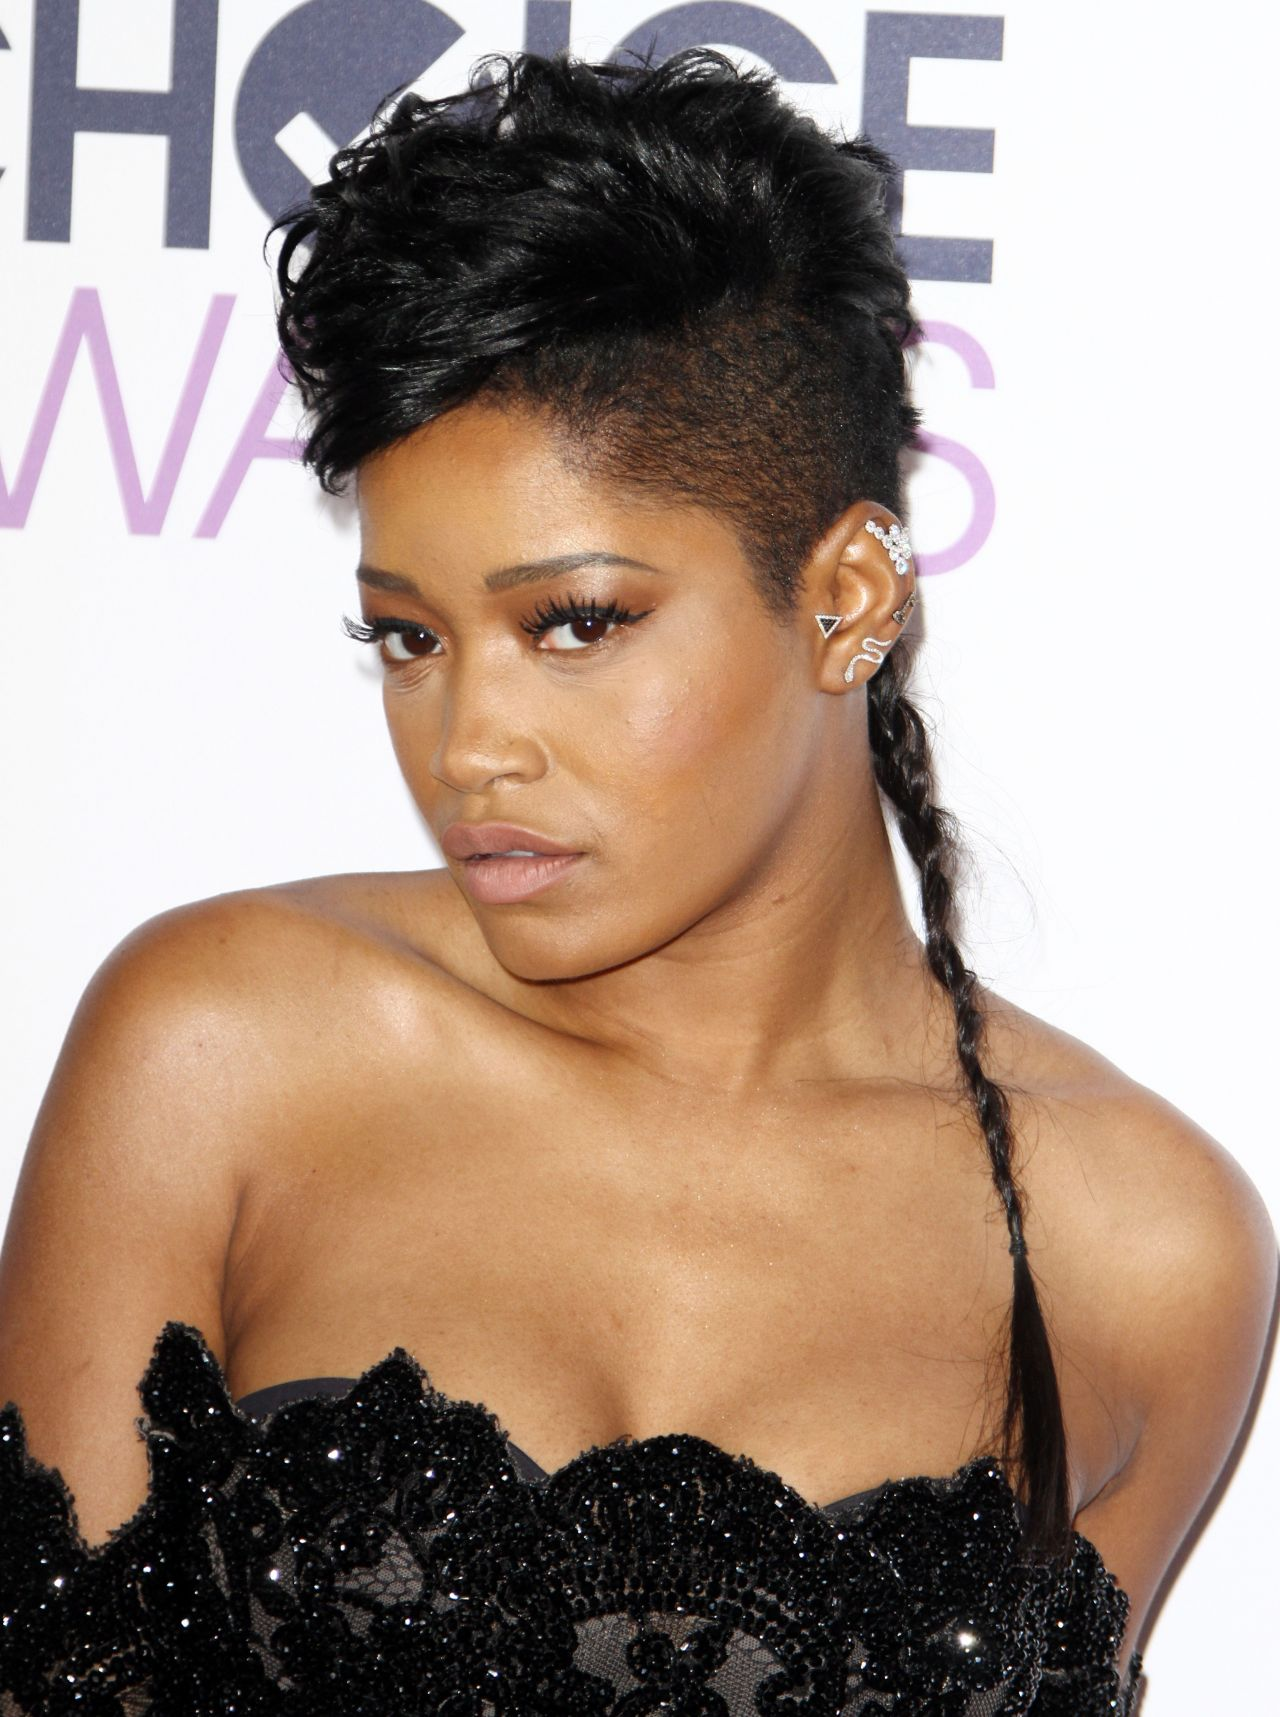 keke-palmer-2016-people-s-choice-awards-in-microsoft-theater-in-los-angeles-4